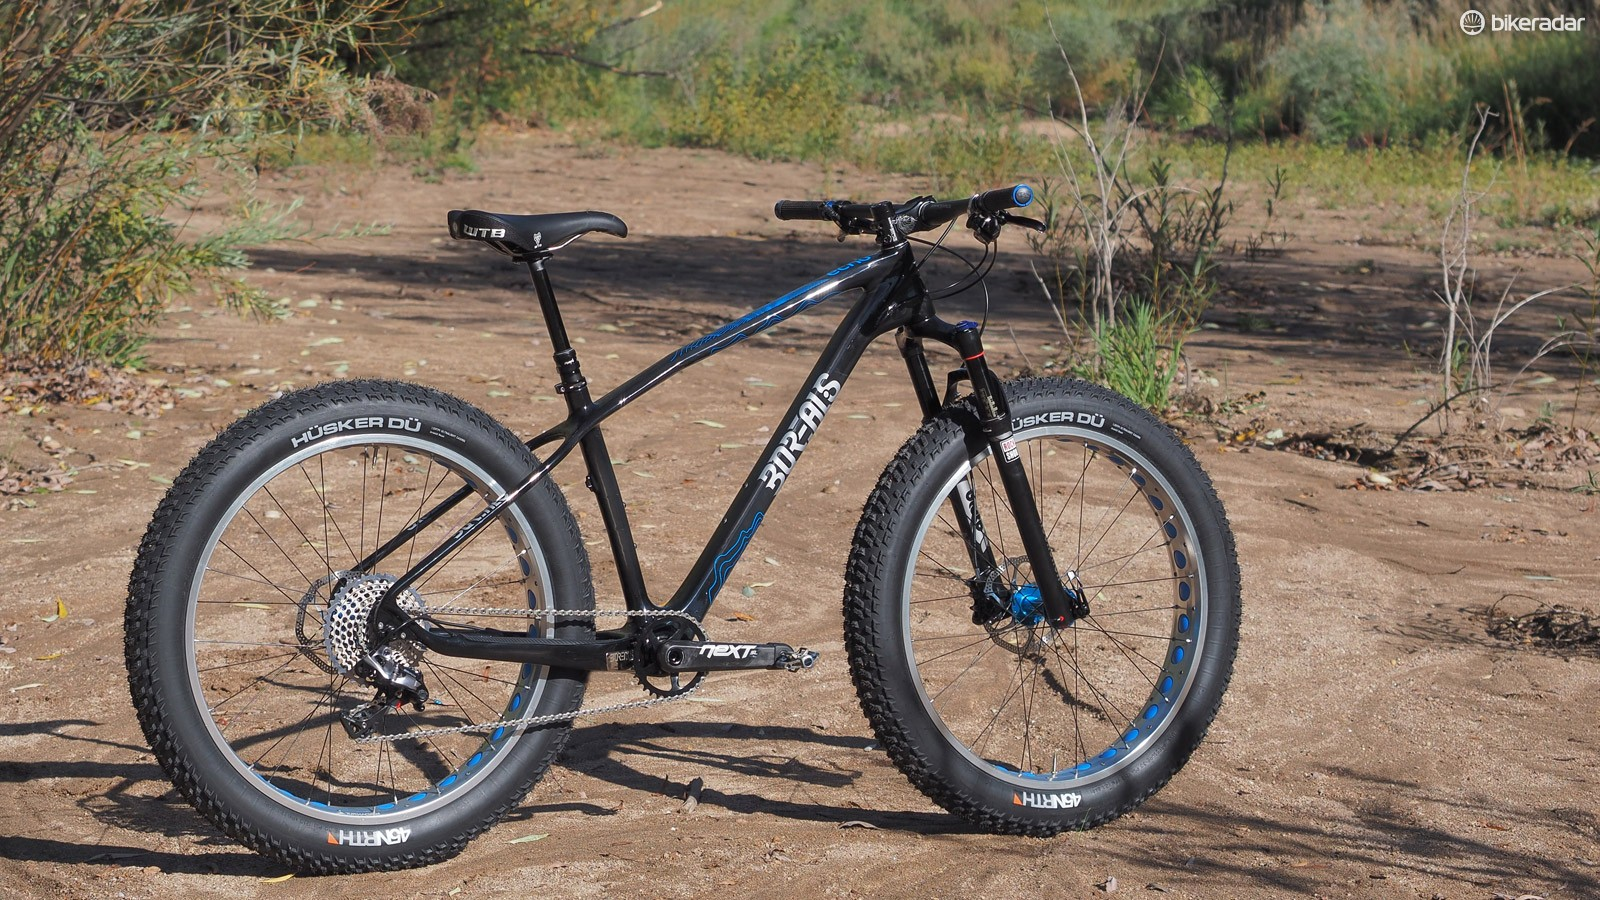 The Borealis Echo fat bike may be best suited for winter riding but it's mighty capable in summertime conditions, too